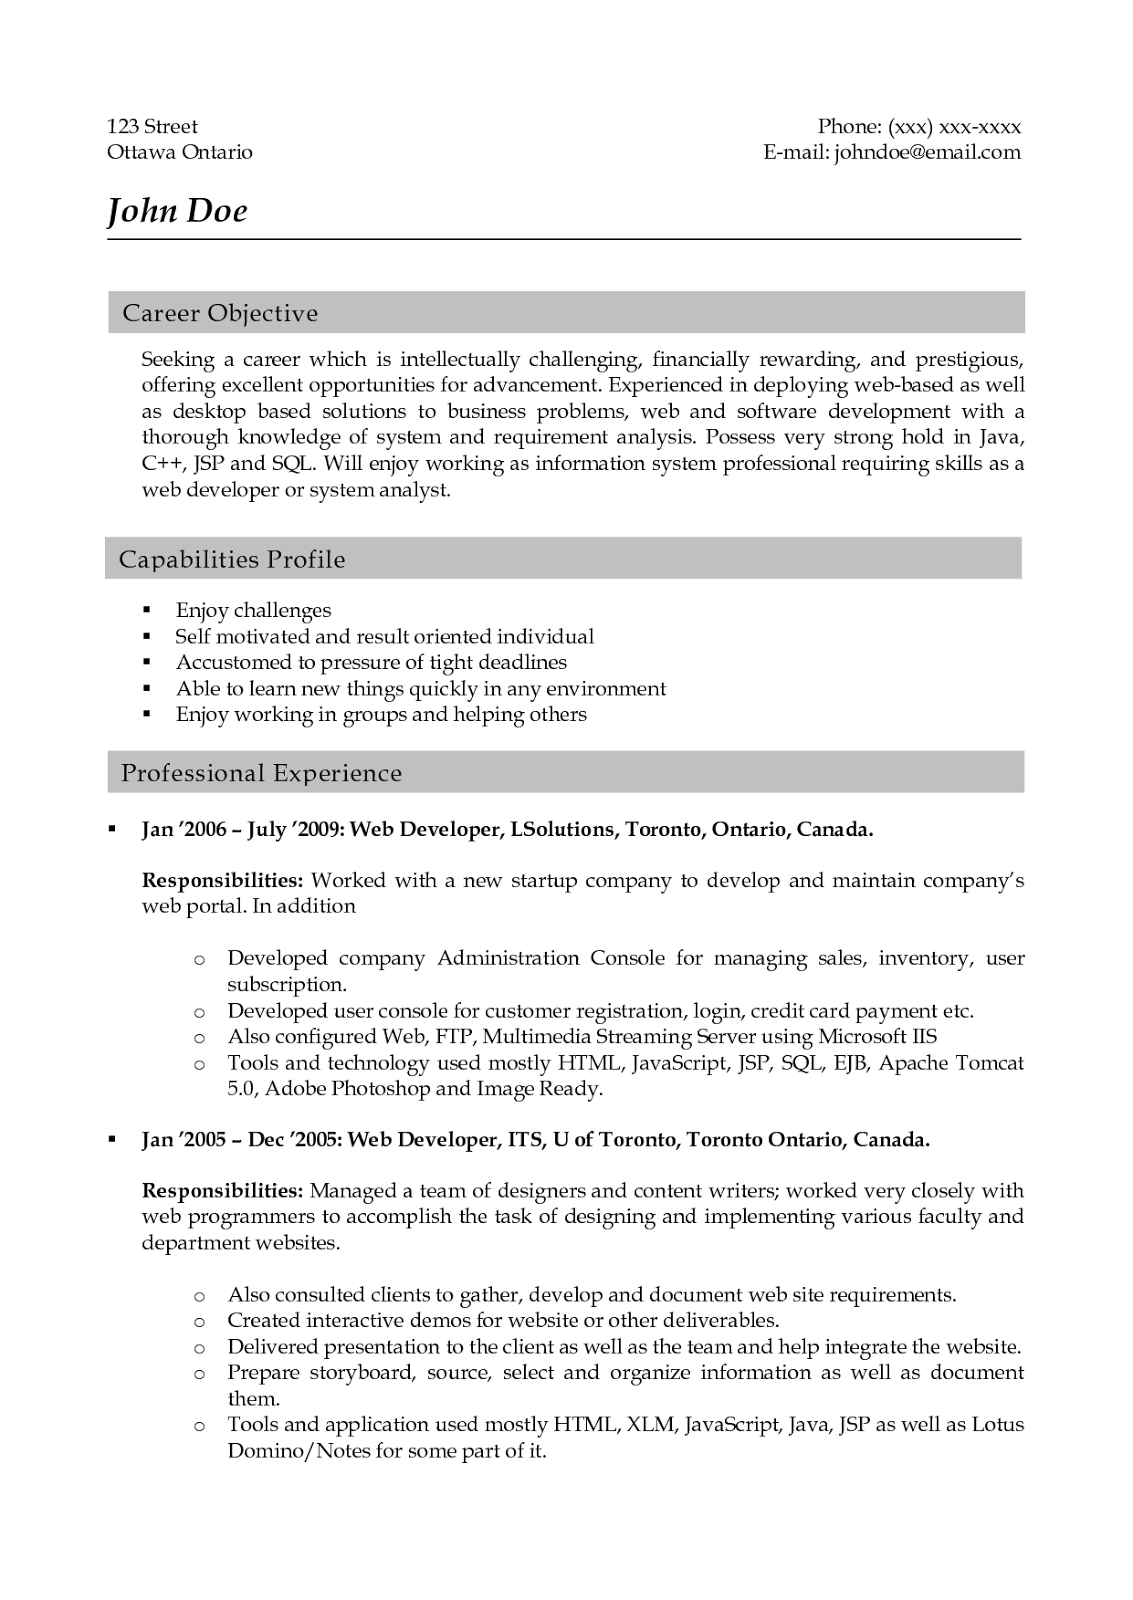 sample resume for web designer experience columbus columbus - Web Designer Resume Example